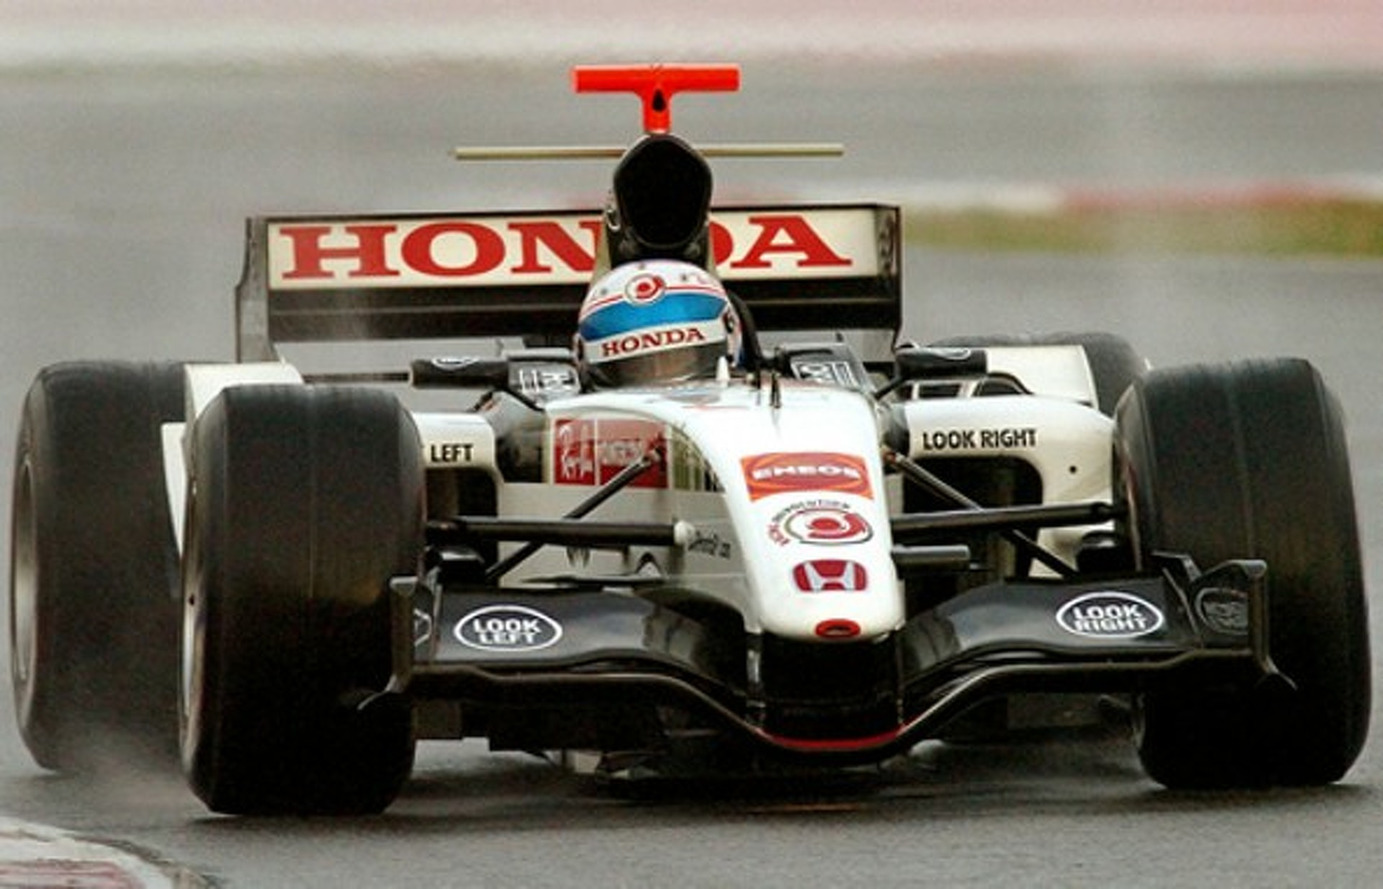 Honda is Returning to F1